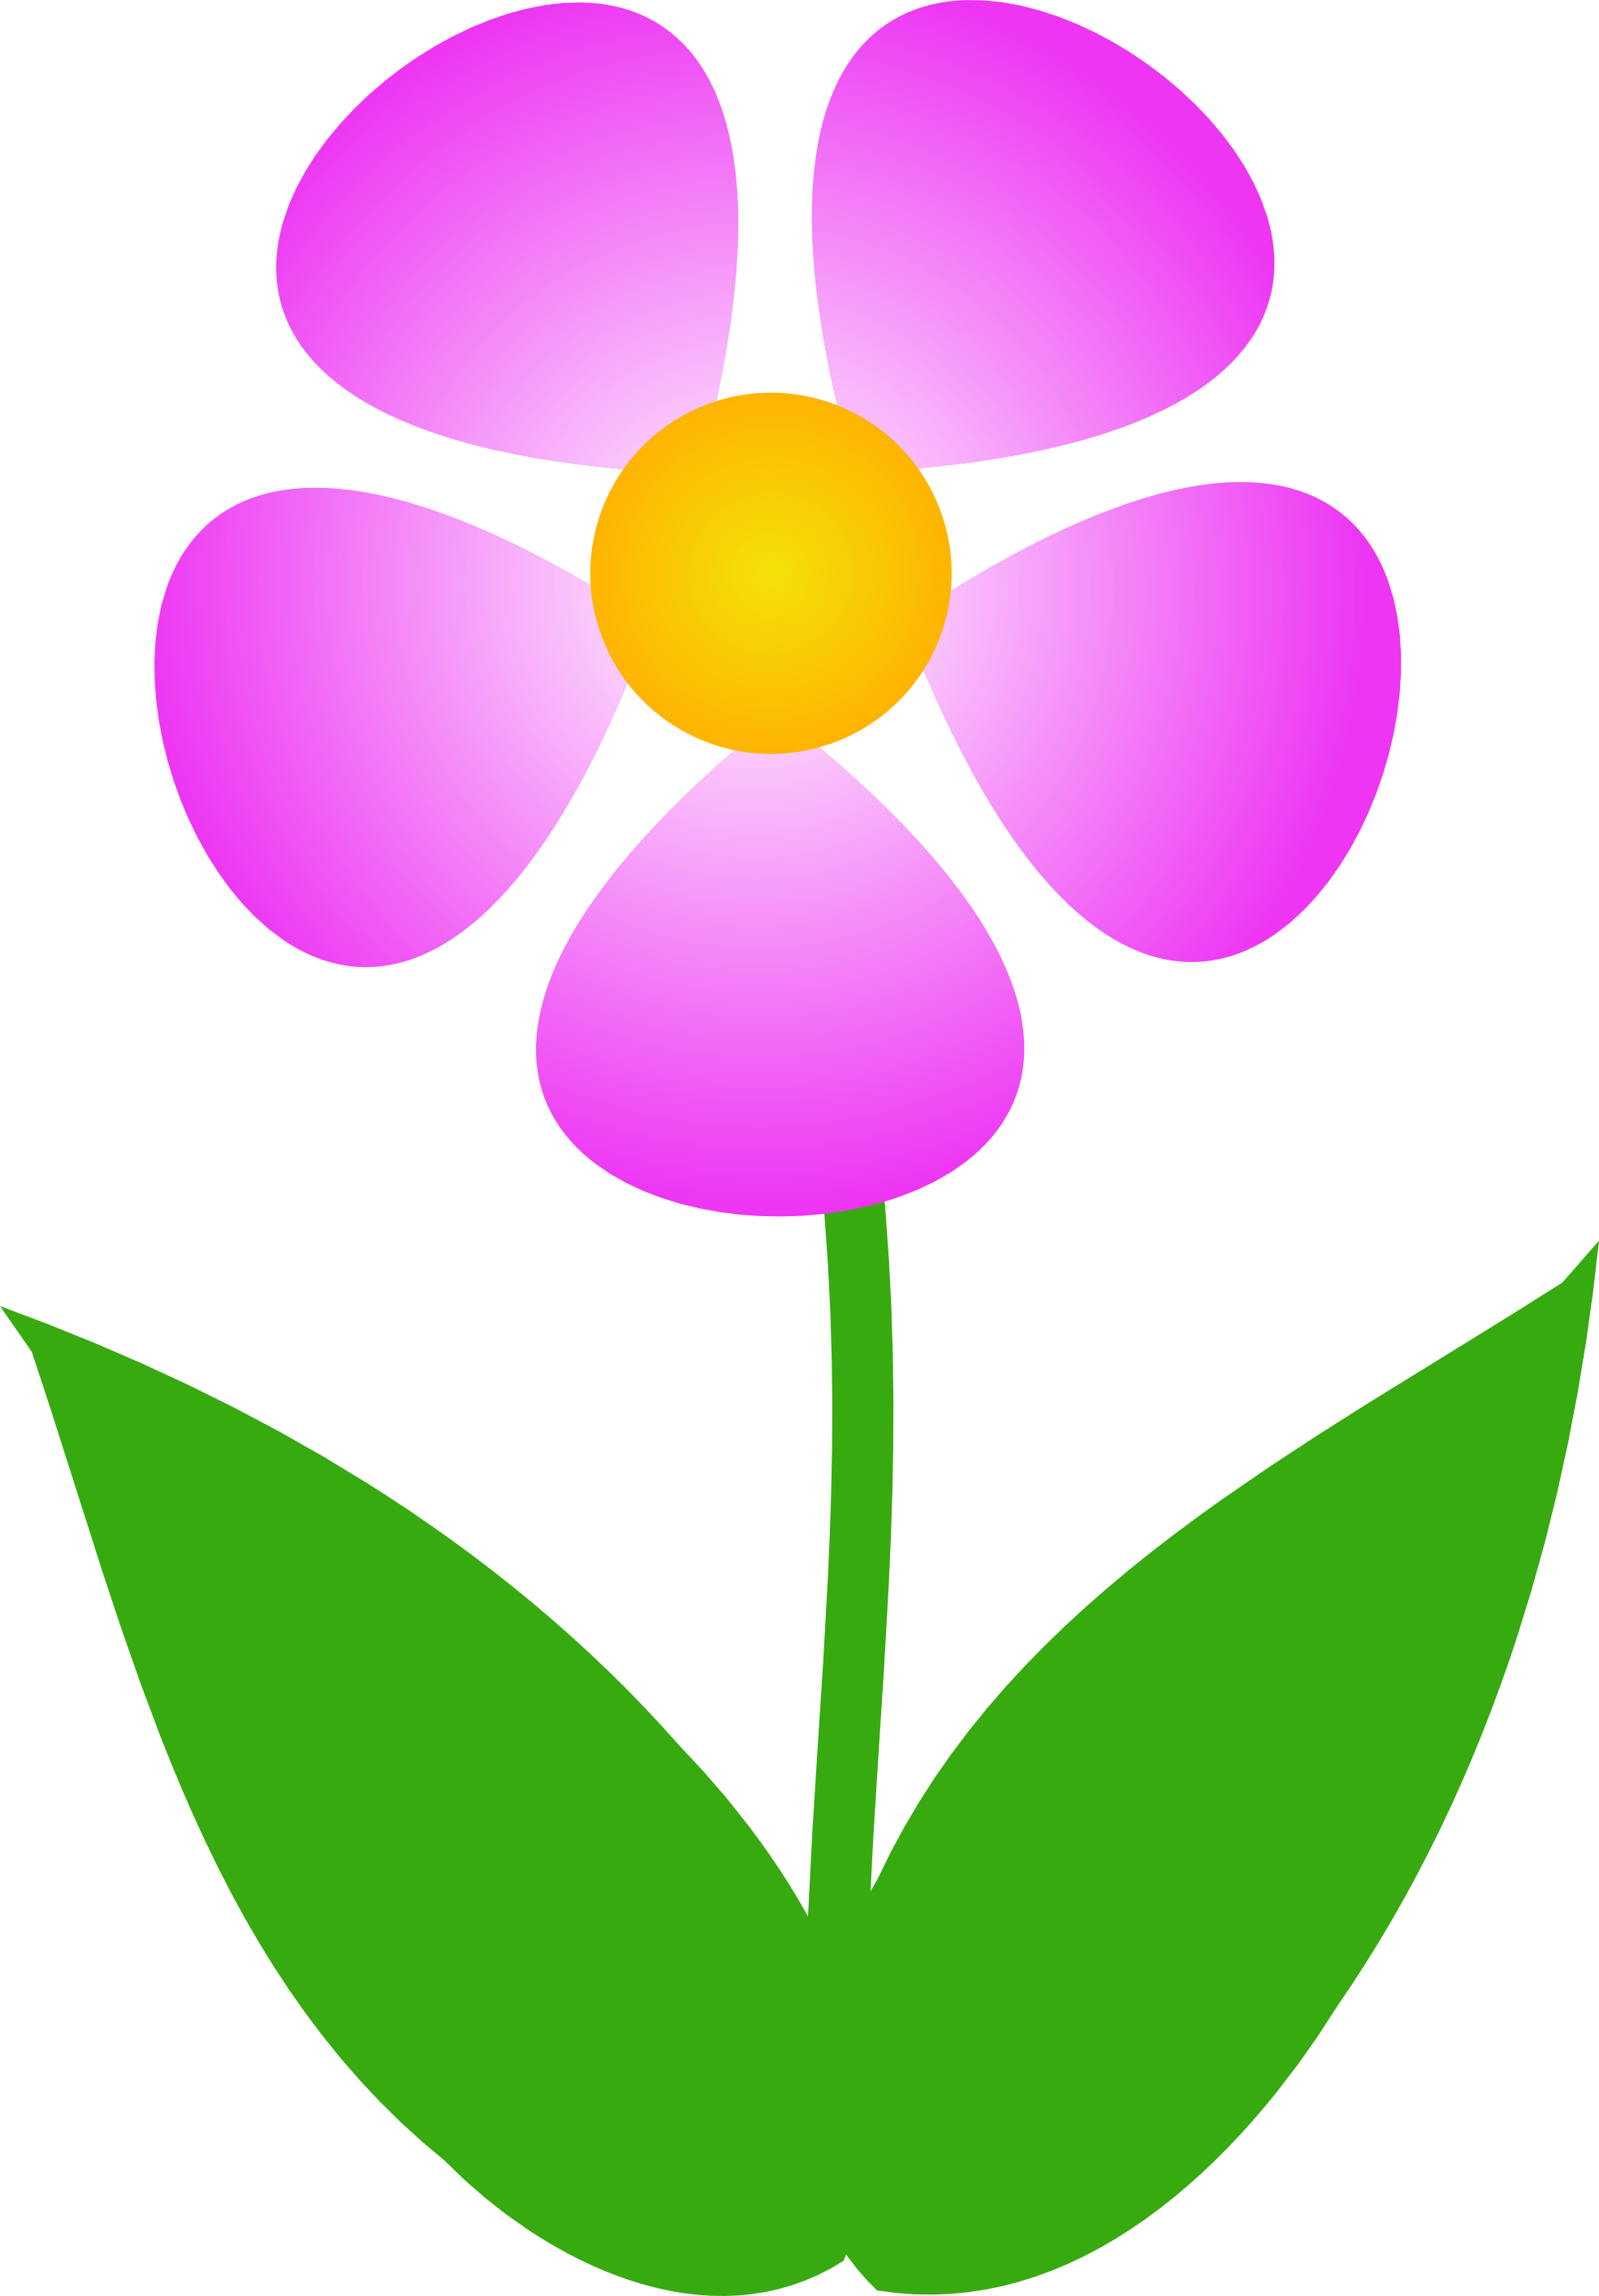 Free clipart image of flowers flower clip art pictures image.